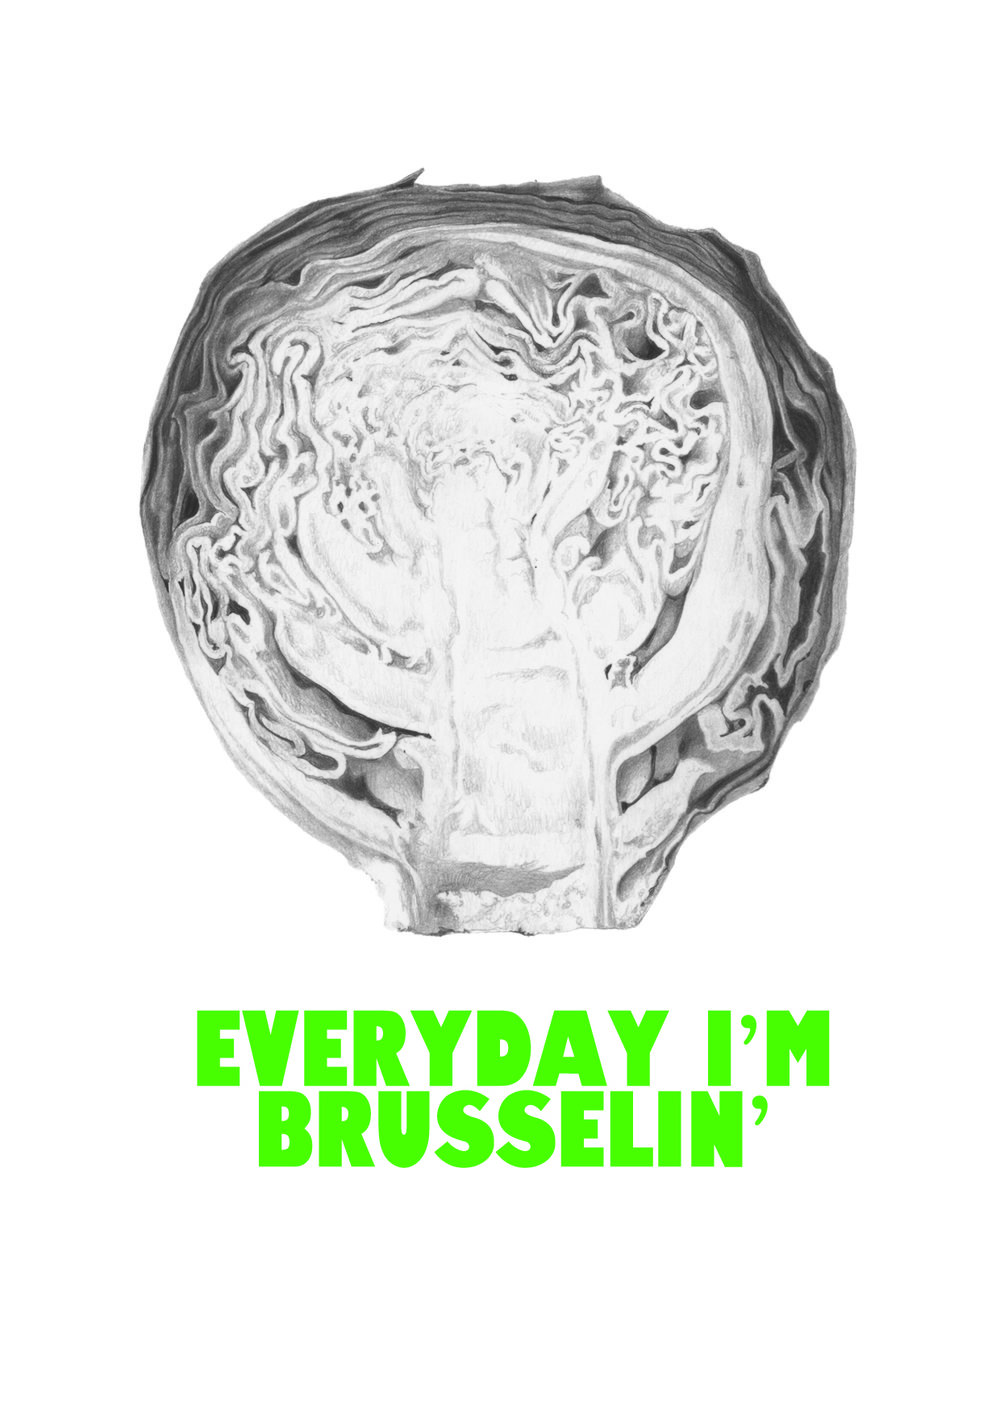 EVERYDAY I'M BRUSSELIN' A6 CARD.jpg